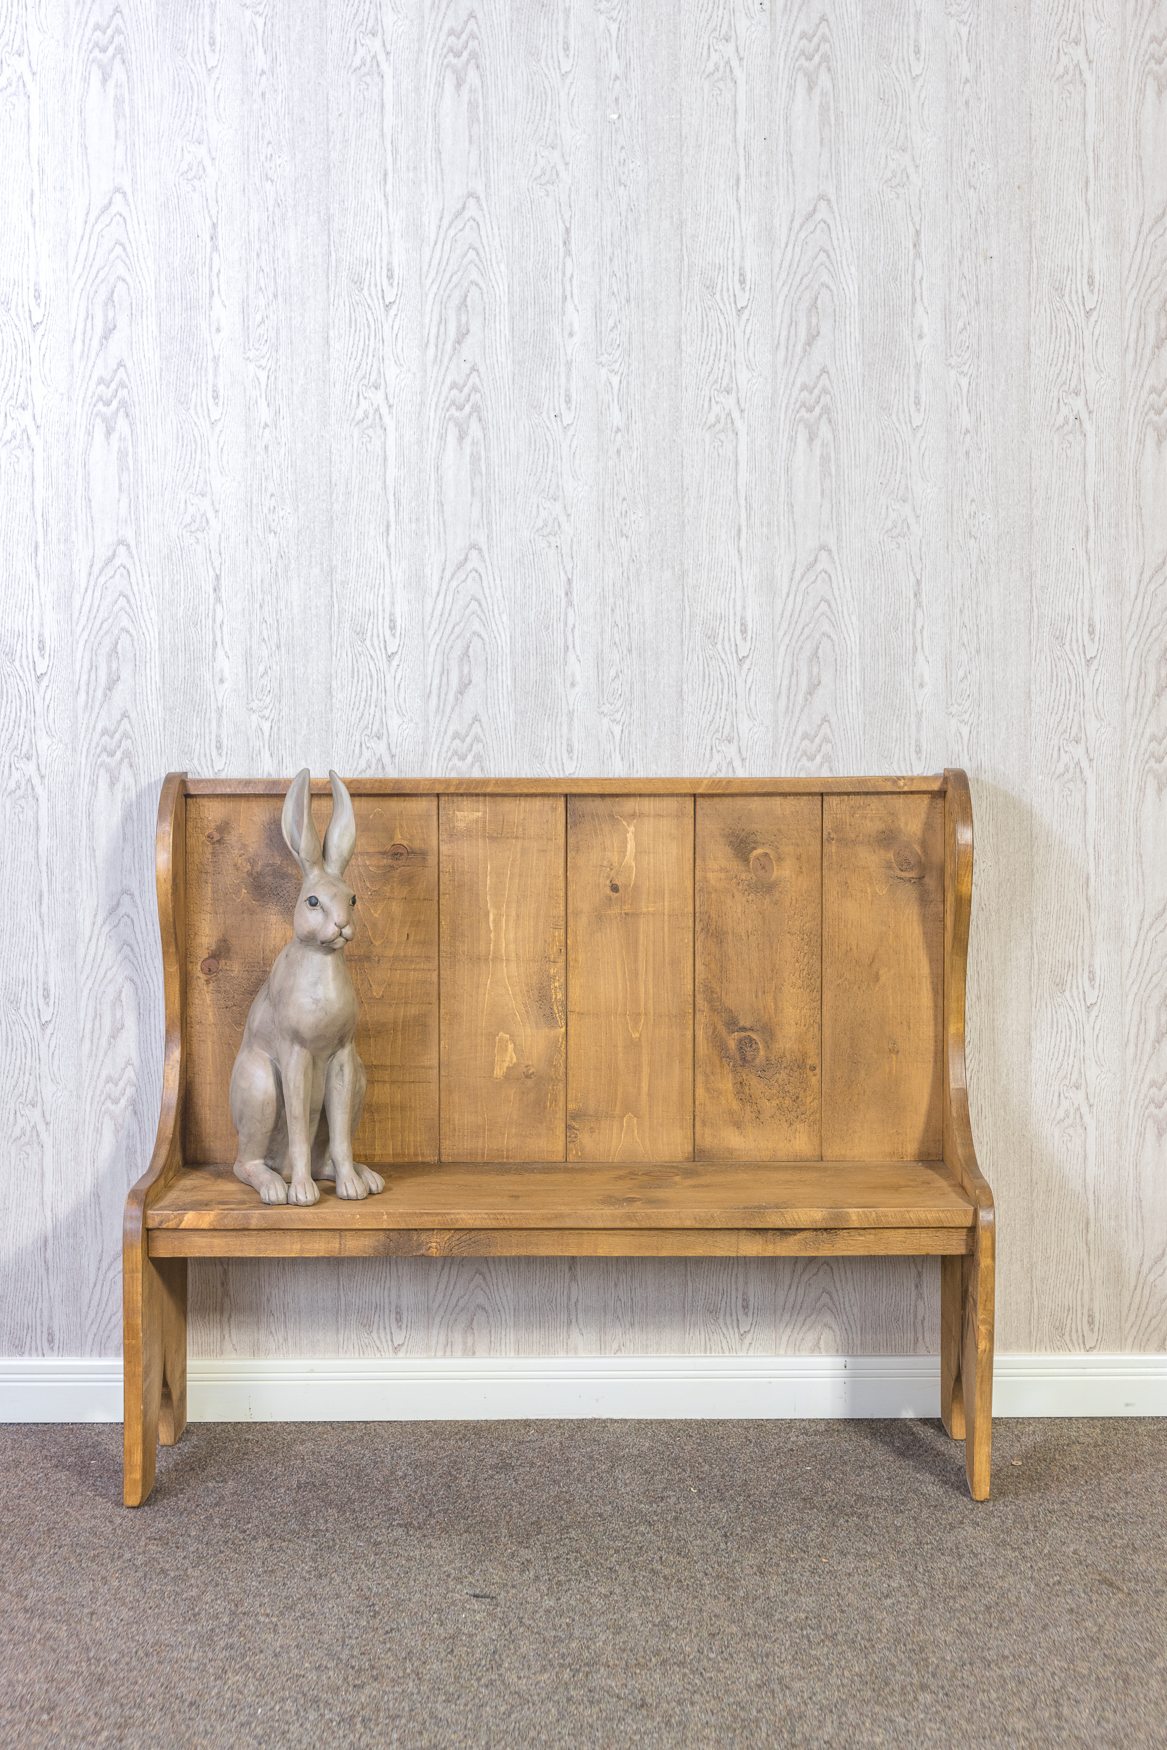 RUSTIC Pew Bench - Without Storage